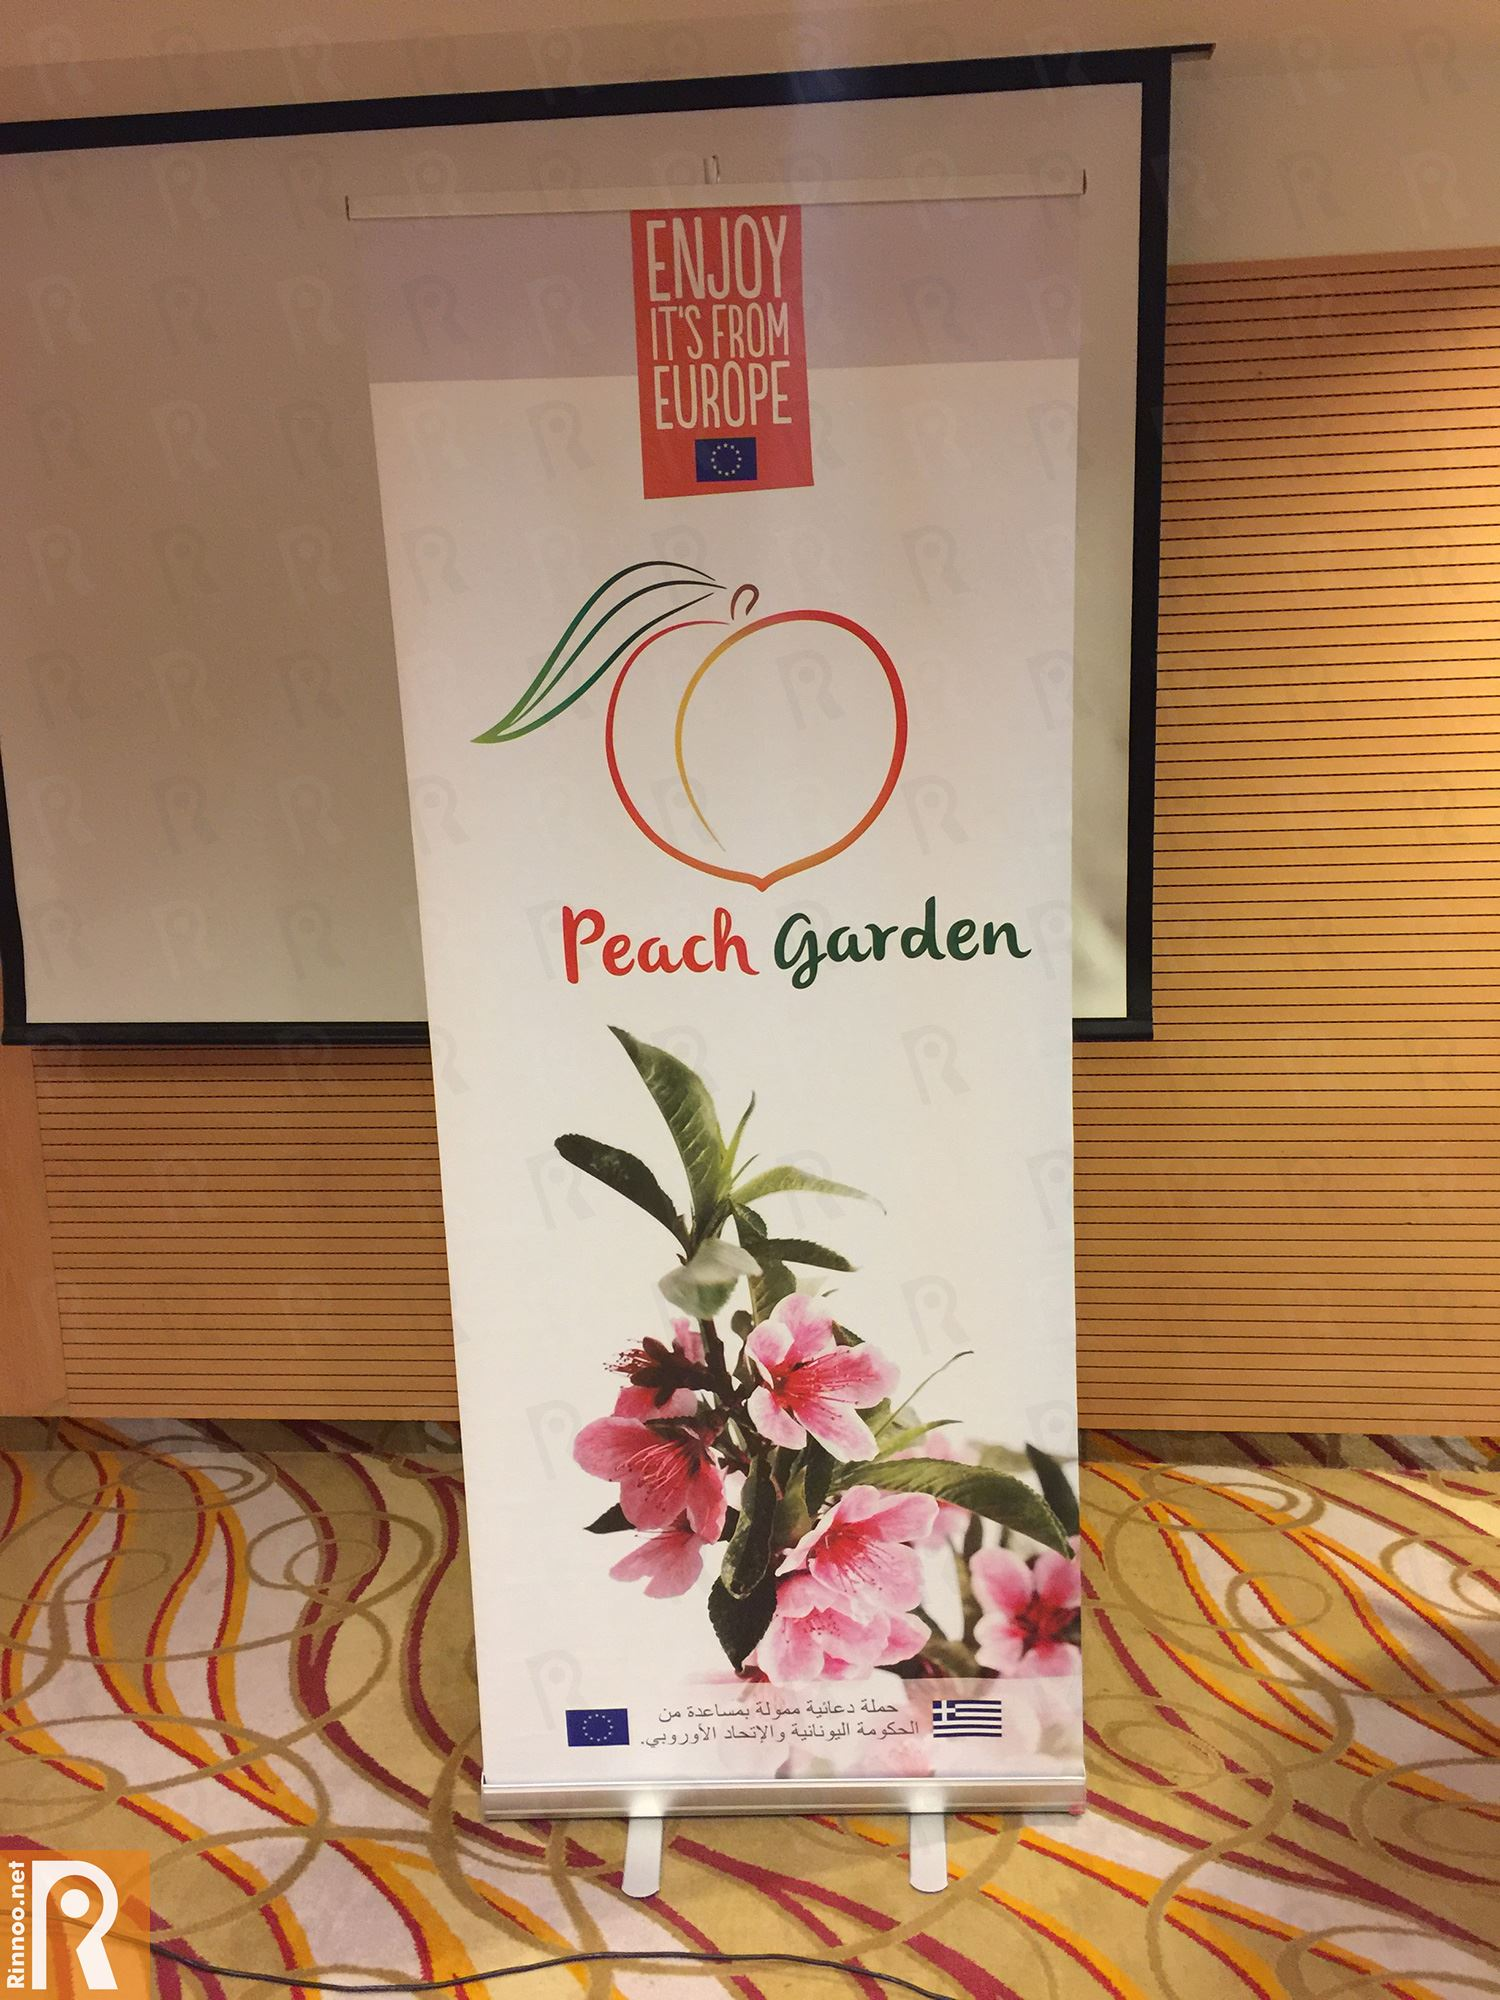 PEACH GARDEN Promotes Fresh Peaches in Kuwait For the 3rd